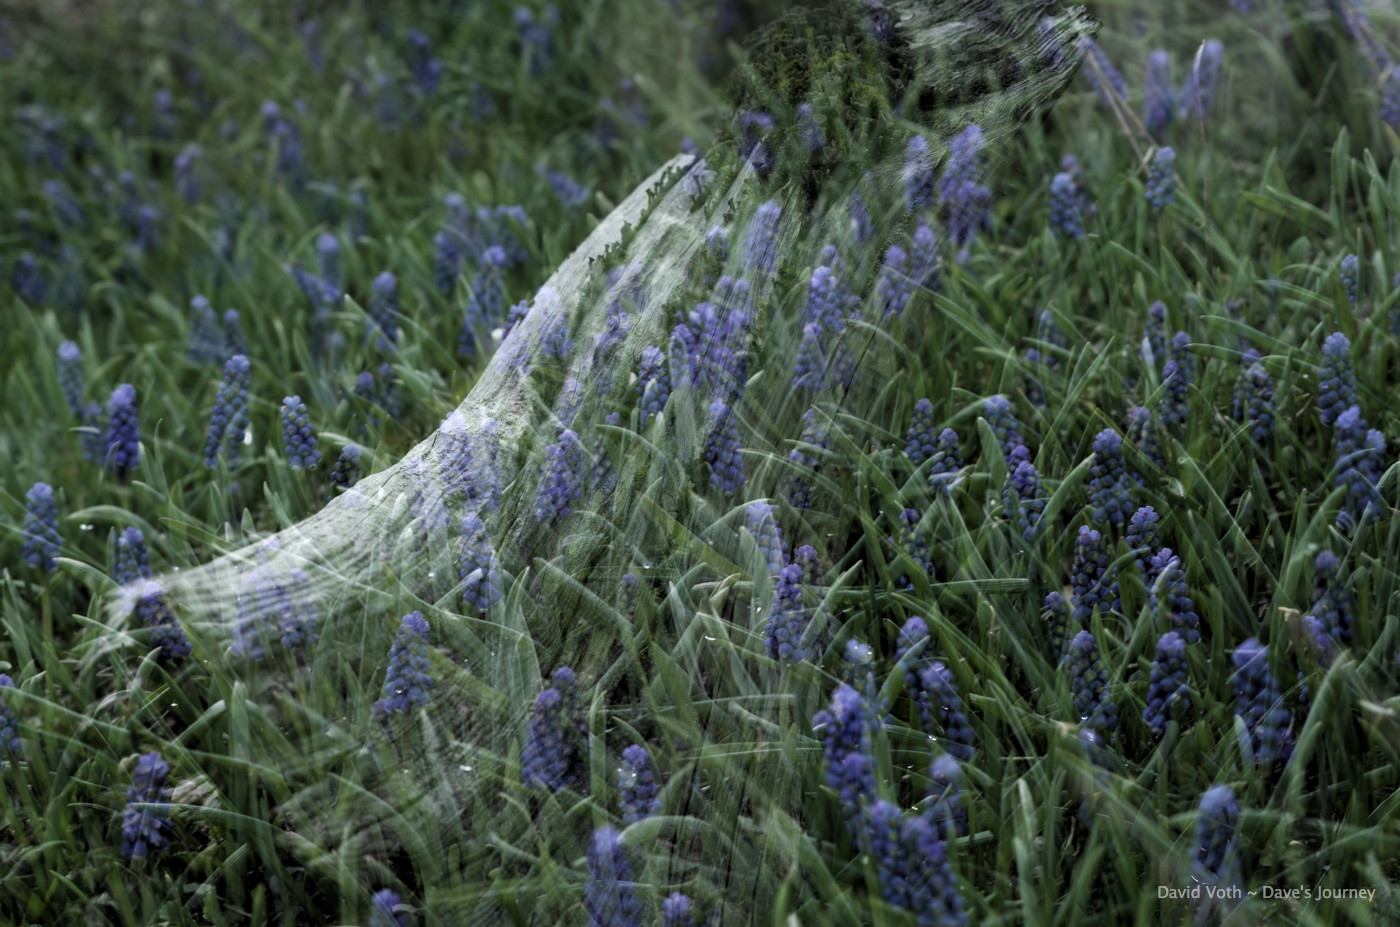 Double exposure with Grape Hyacinth